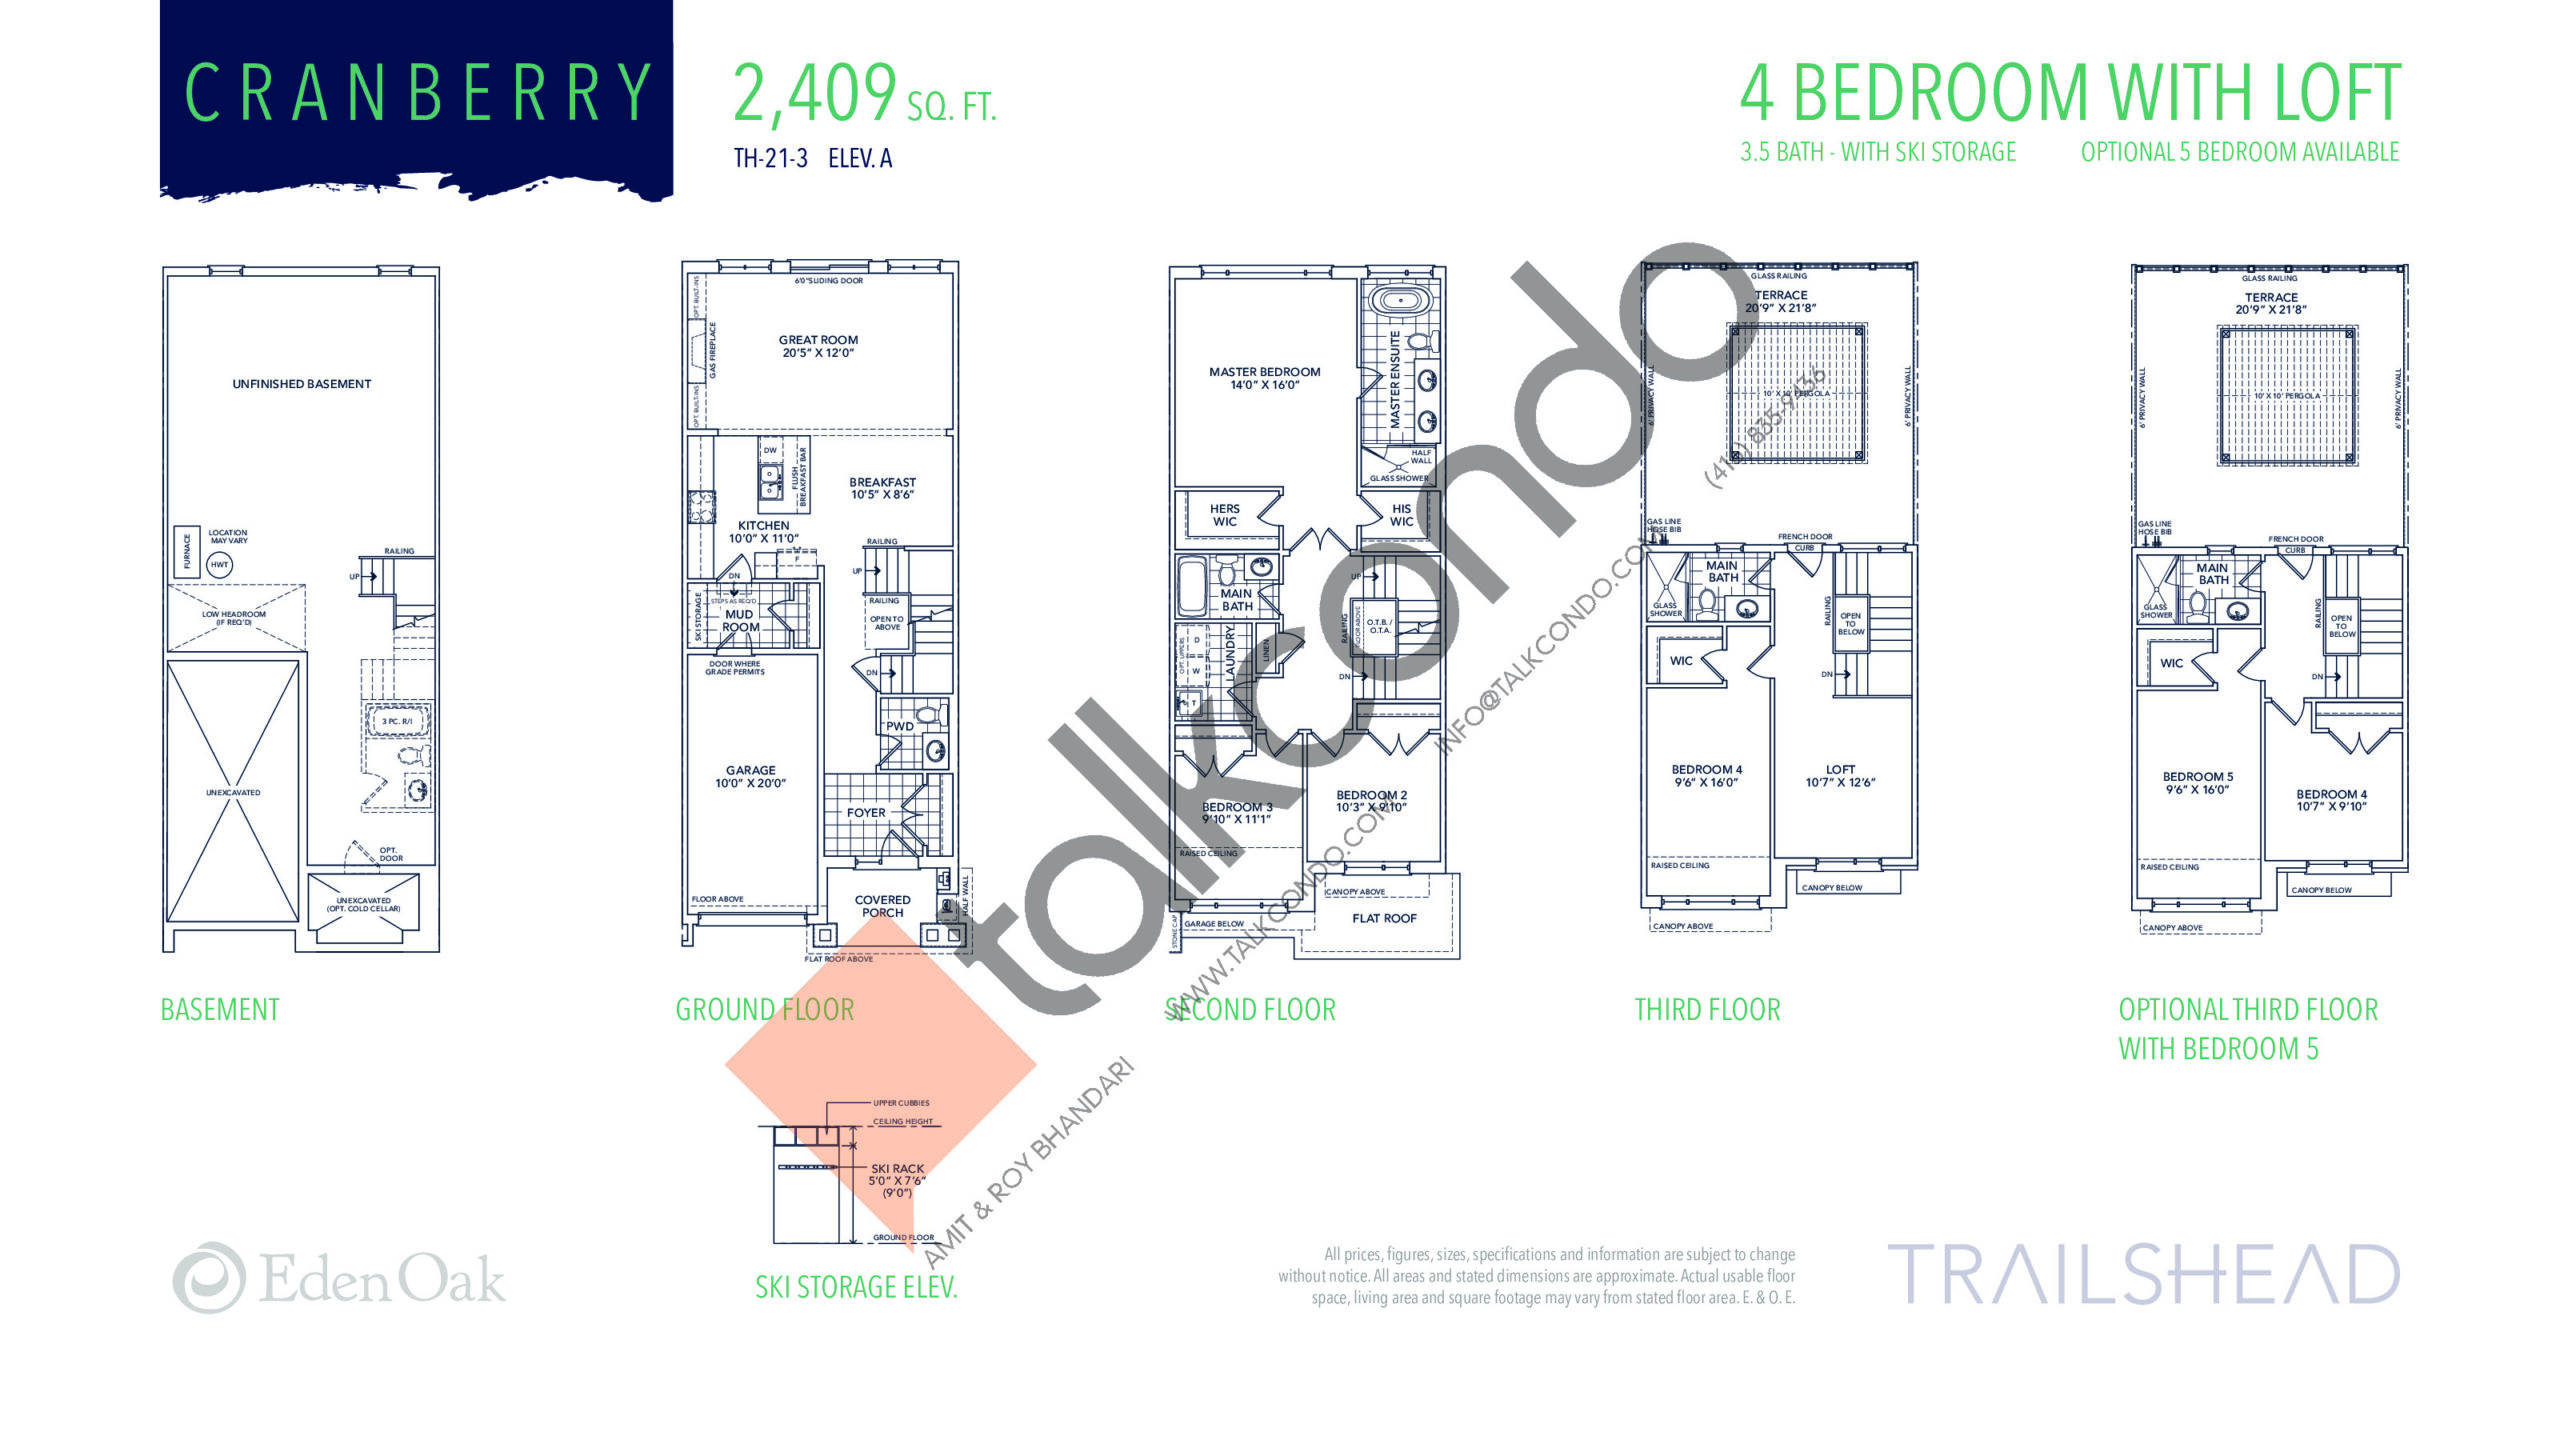 Cranberry (1/2) Floor Plan at Trailshead Towns - 2409 sq.ft